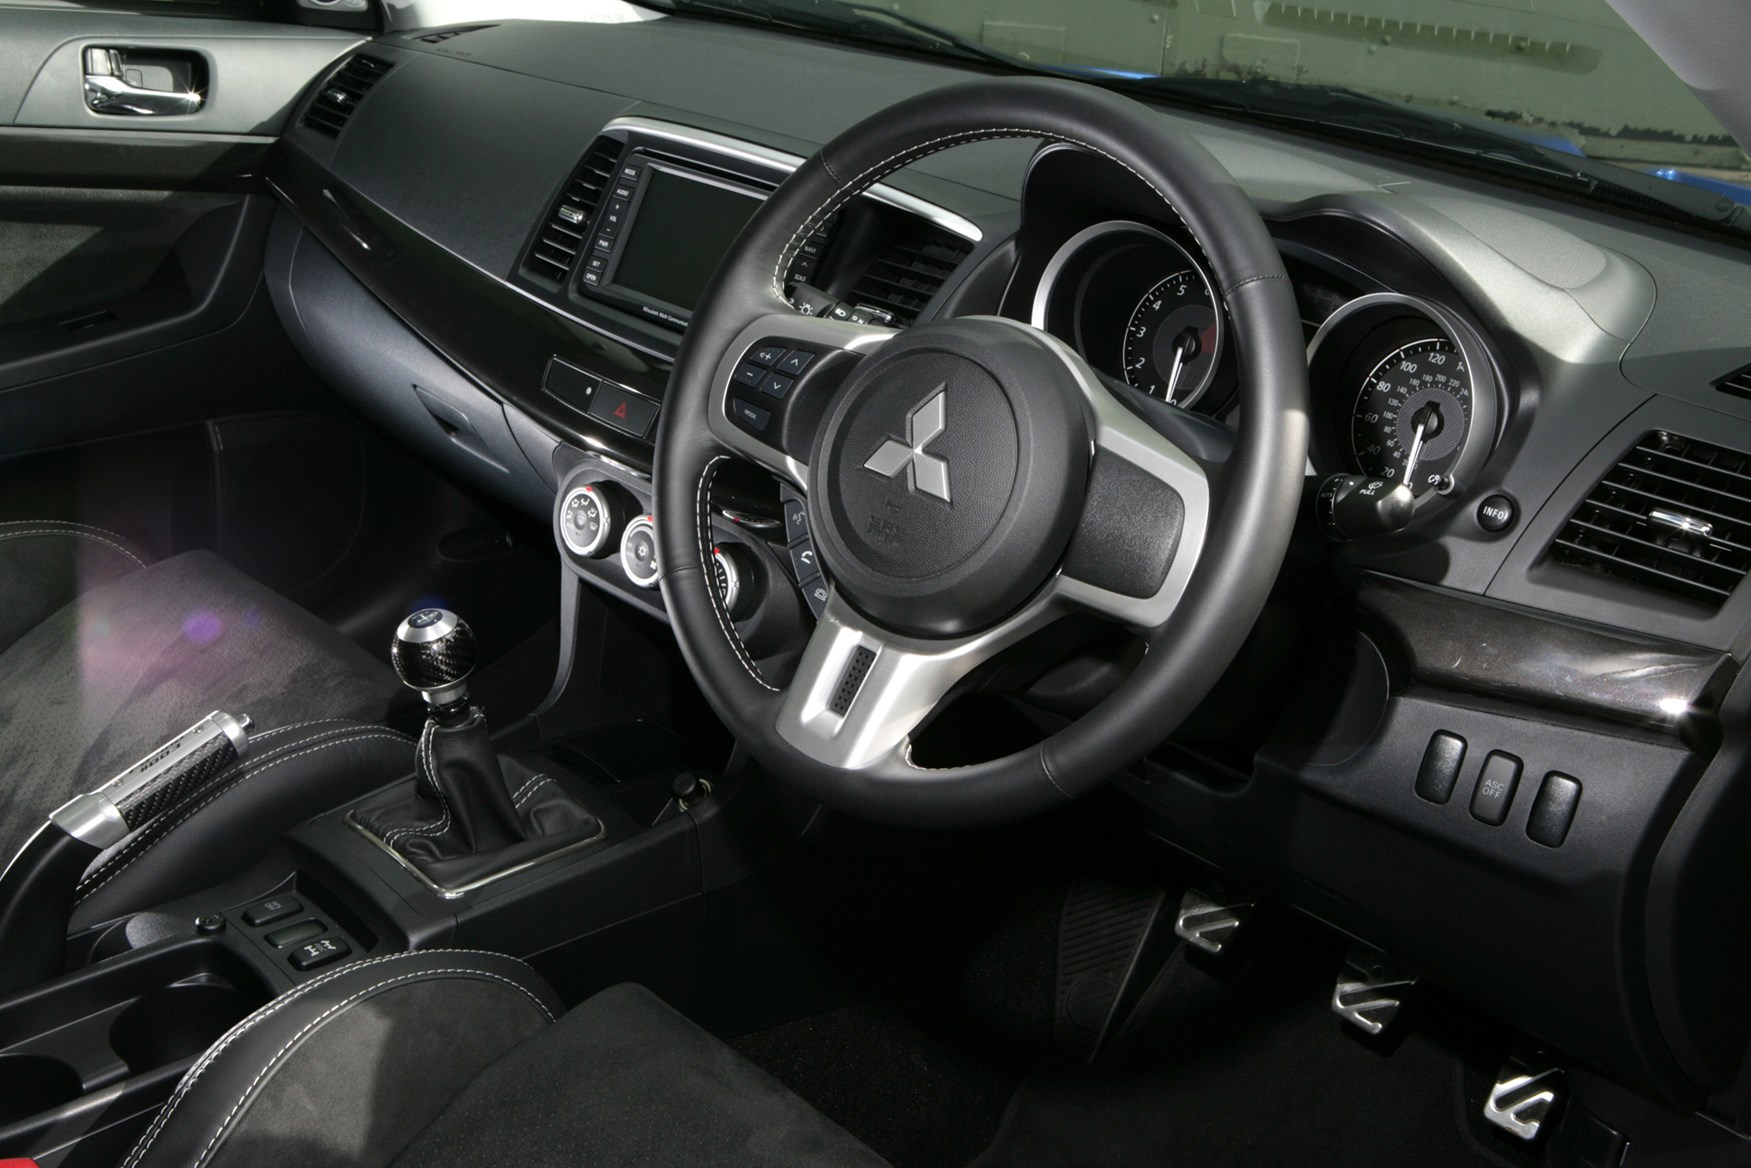 mitsubishi lancer 2003 interior. view all images of the mitsubishi lancer evo x 0814 2003 interior